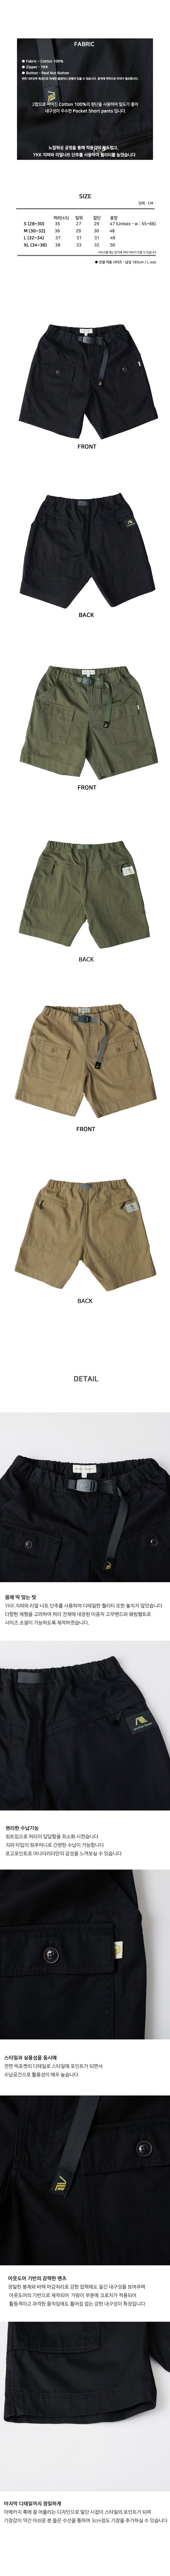 어나더리더(ANOTHER LEADER) Pocket Short pants (Black)